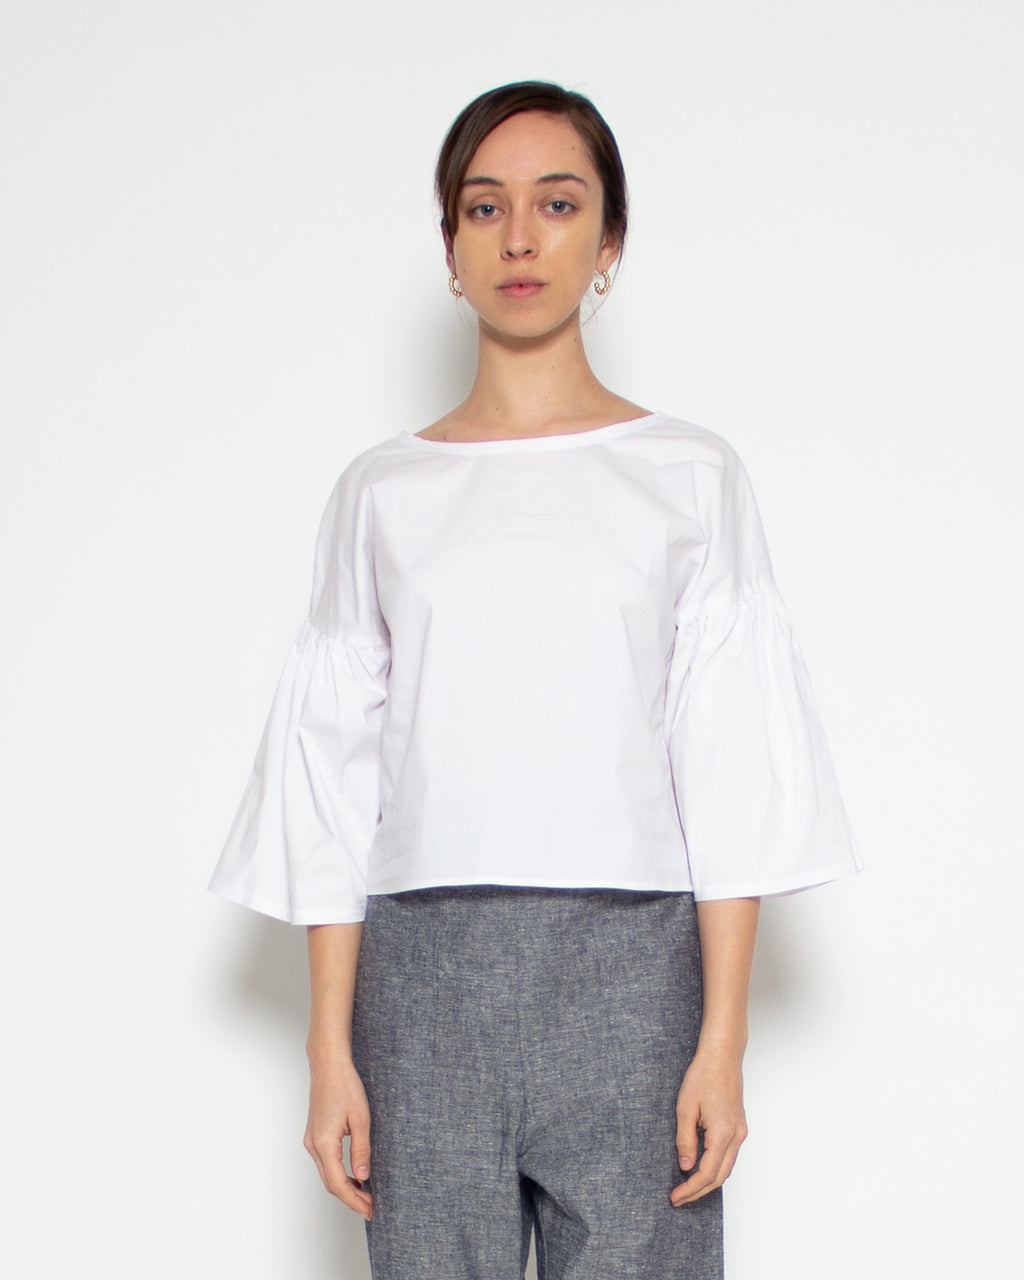 Hiro Top in White Organic Cotton